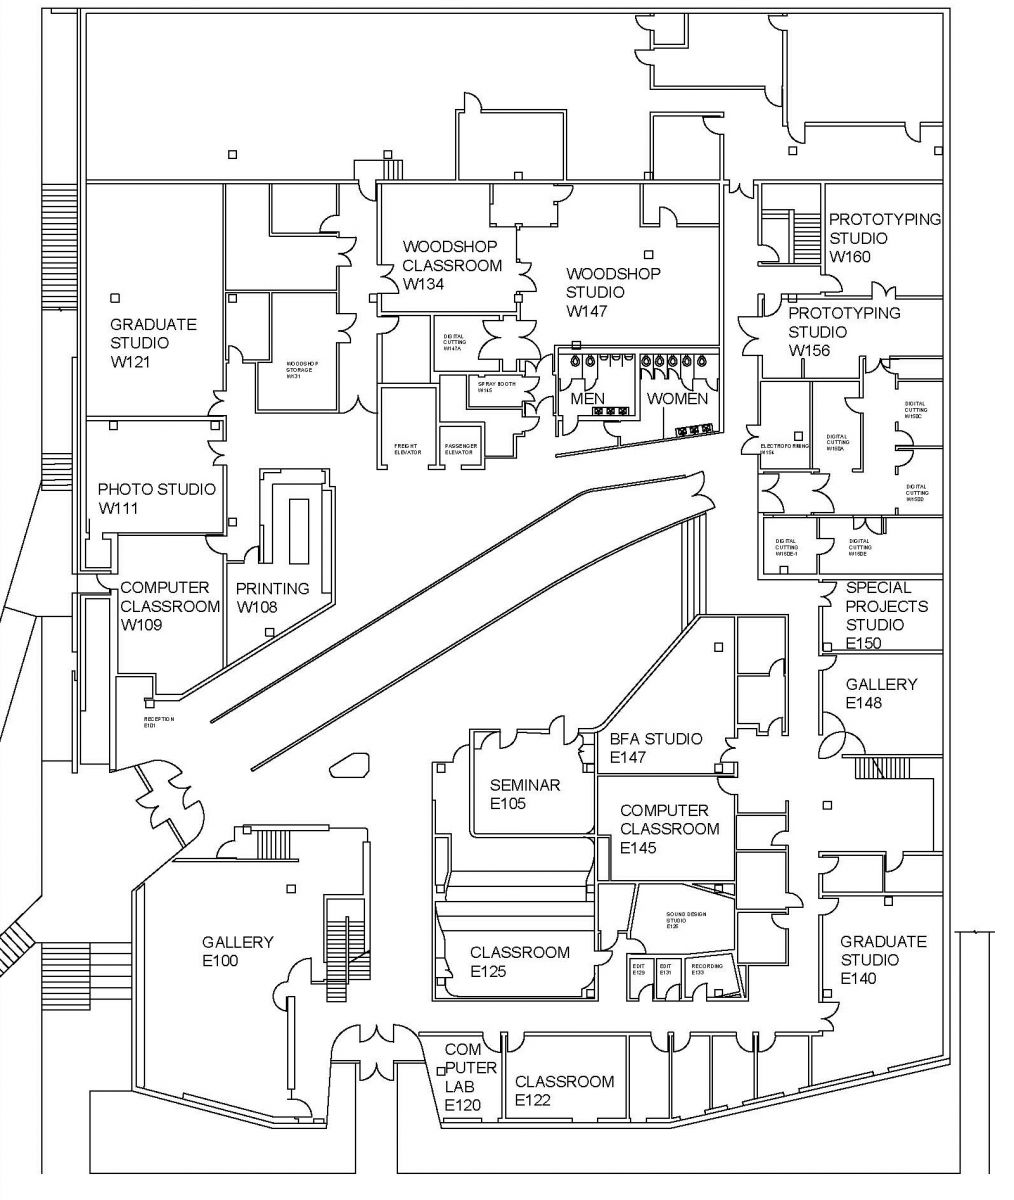 Visual Arts Building Floor Plans School Of Art And Art